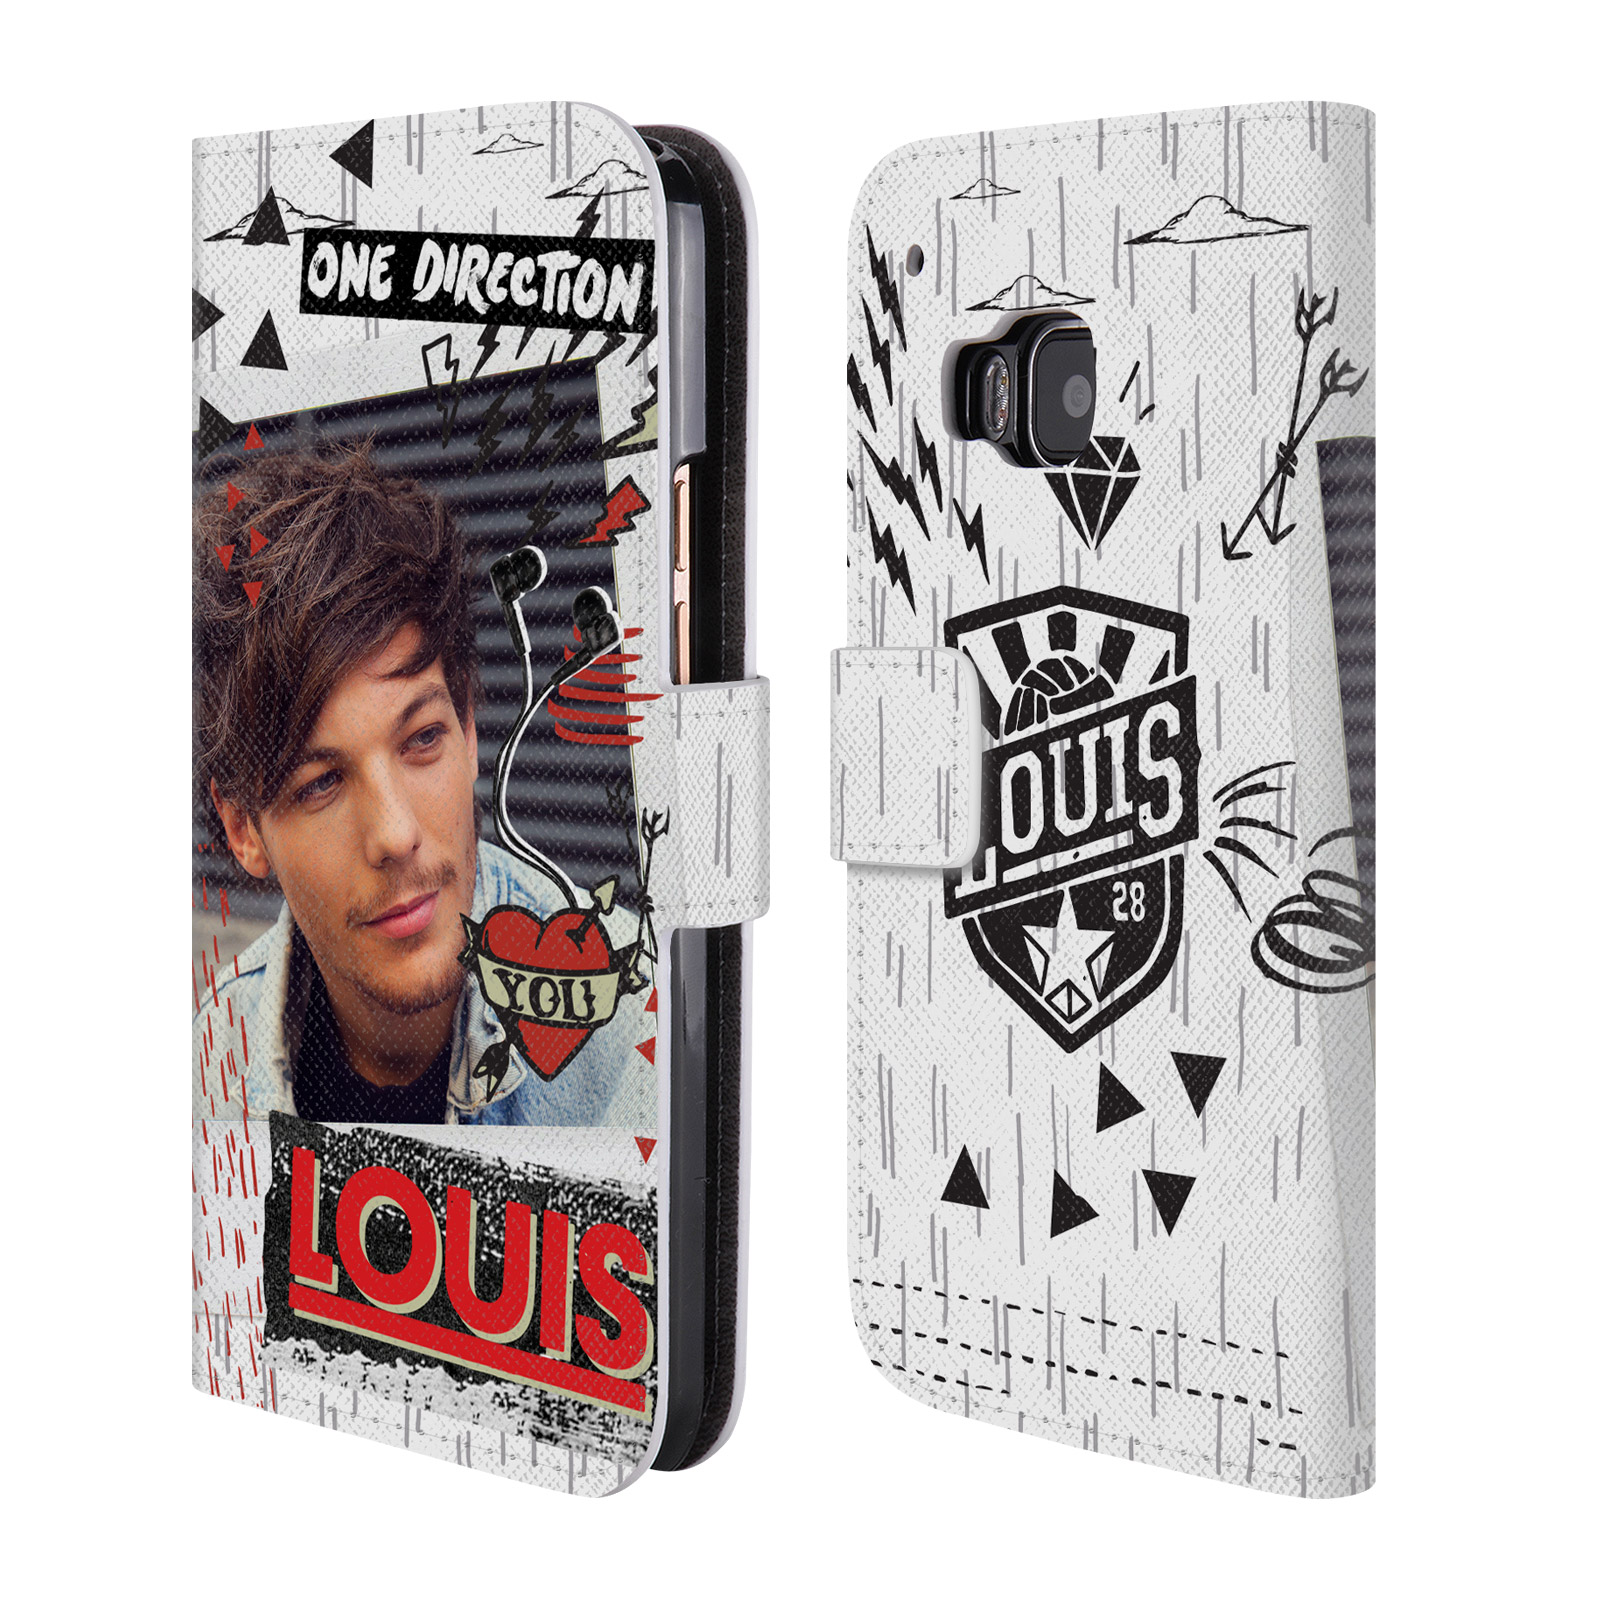 Officiel-One-Direction-1D-minuit-Louis-en-cuir-Livre-Etui-Pour-HTC-Phone-1